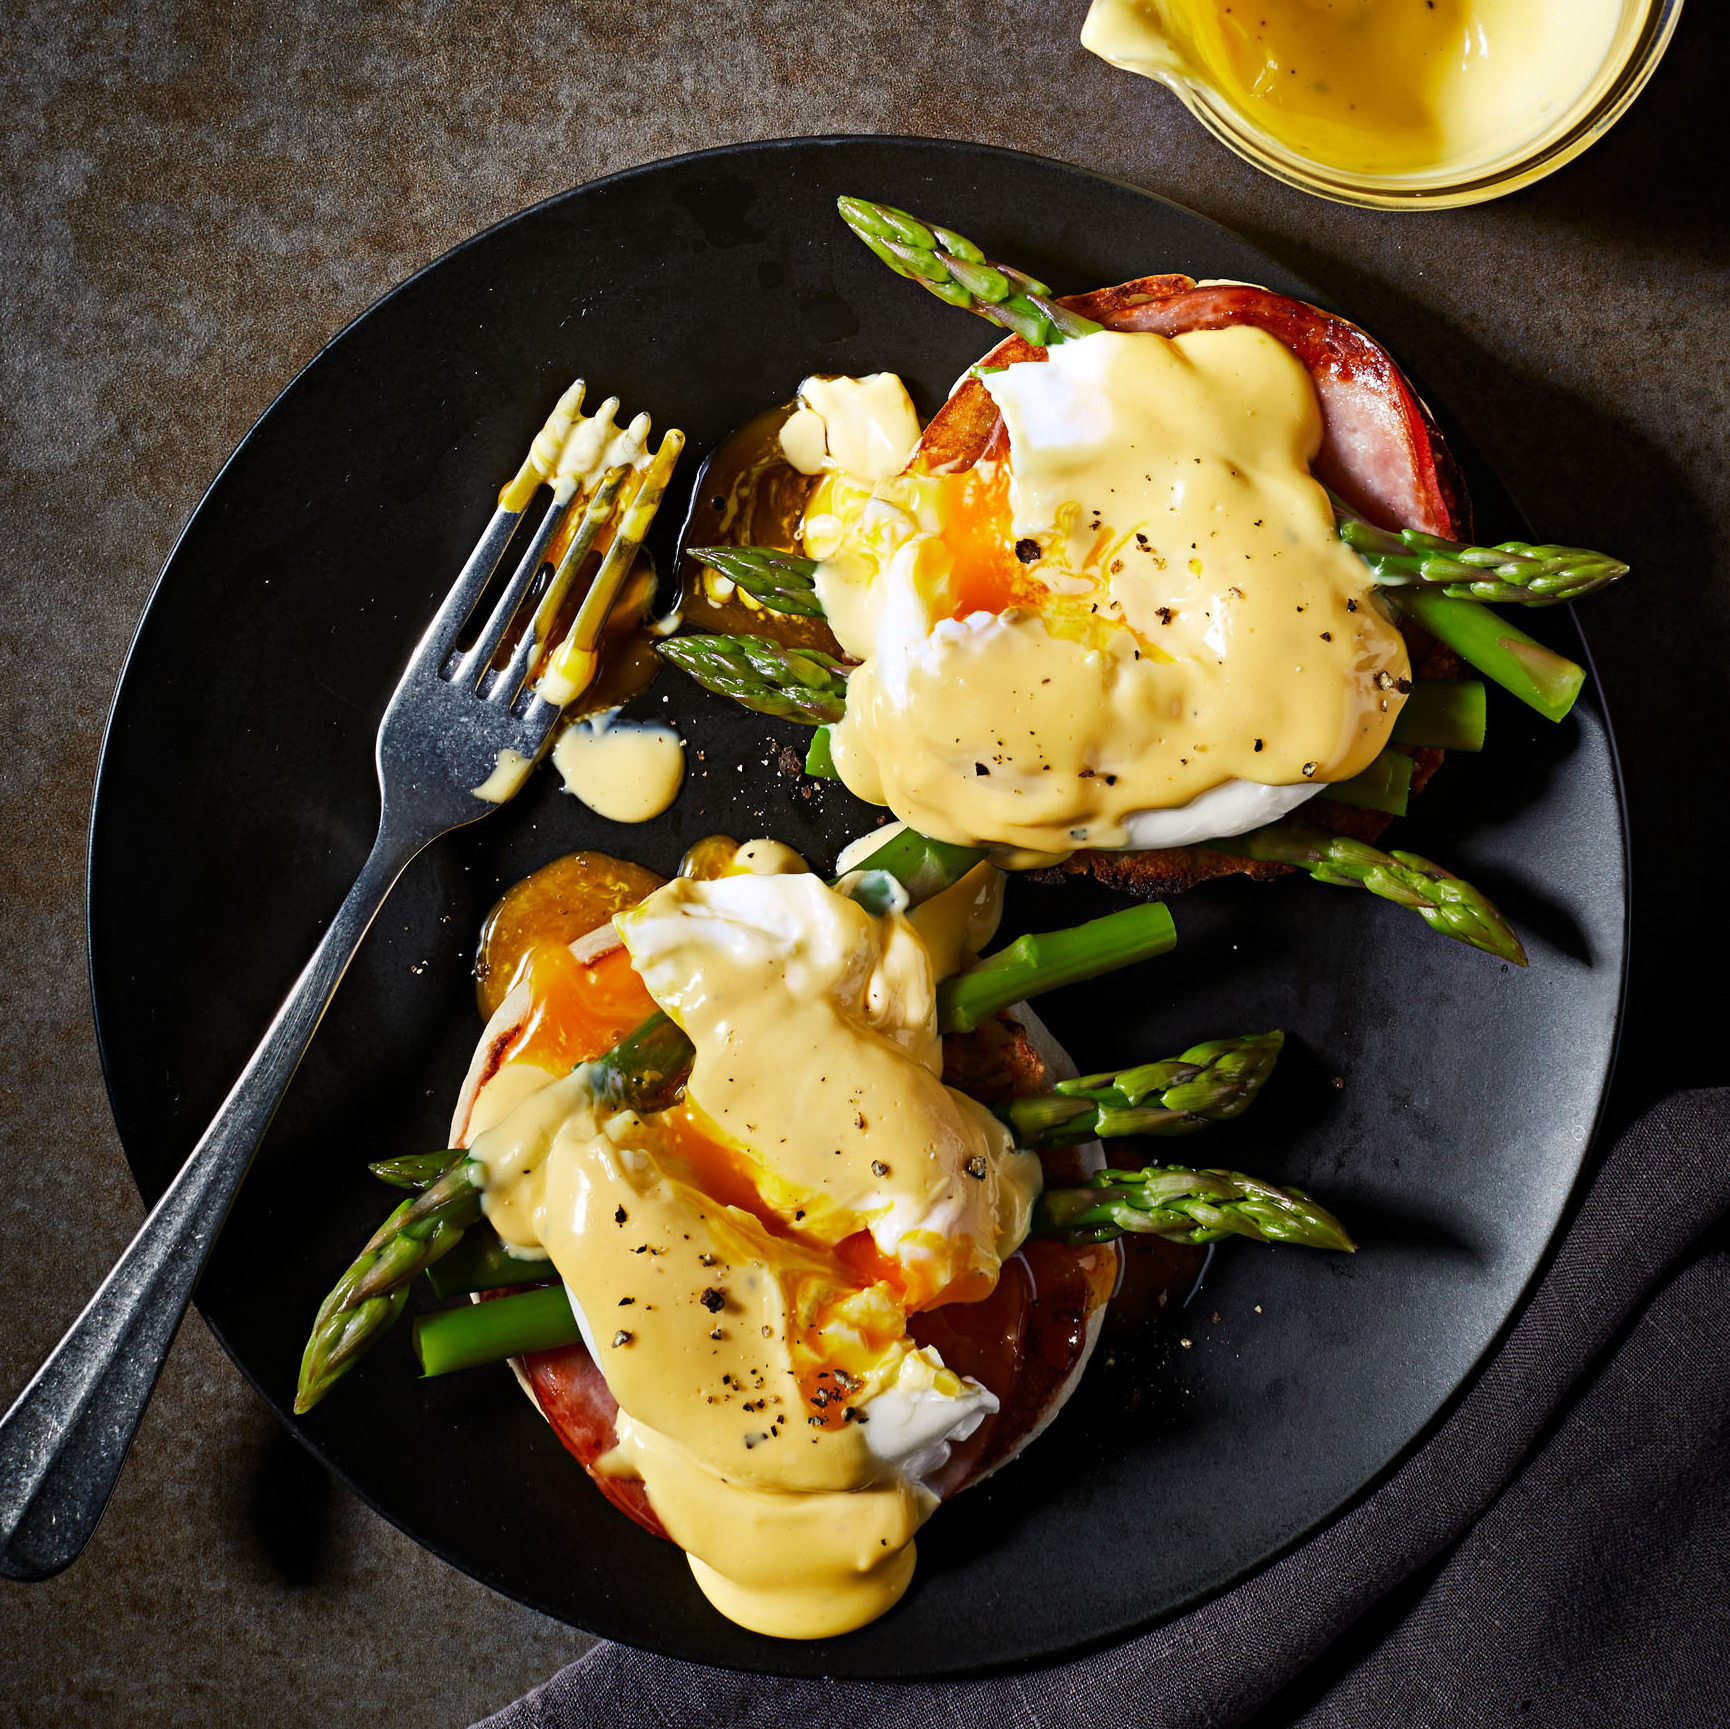 eggs benedict on a plate with asparagus